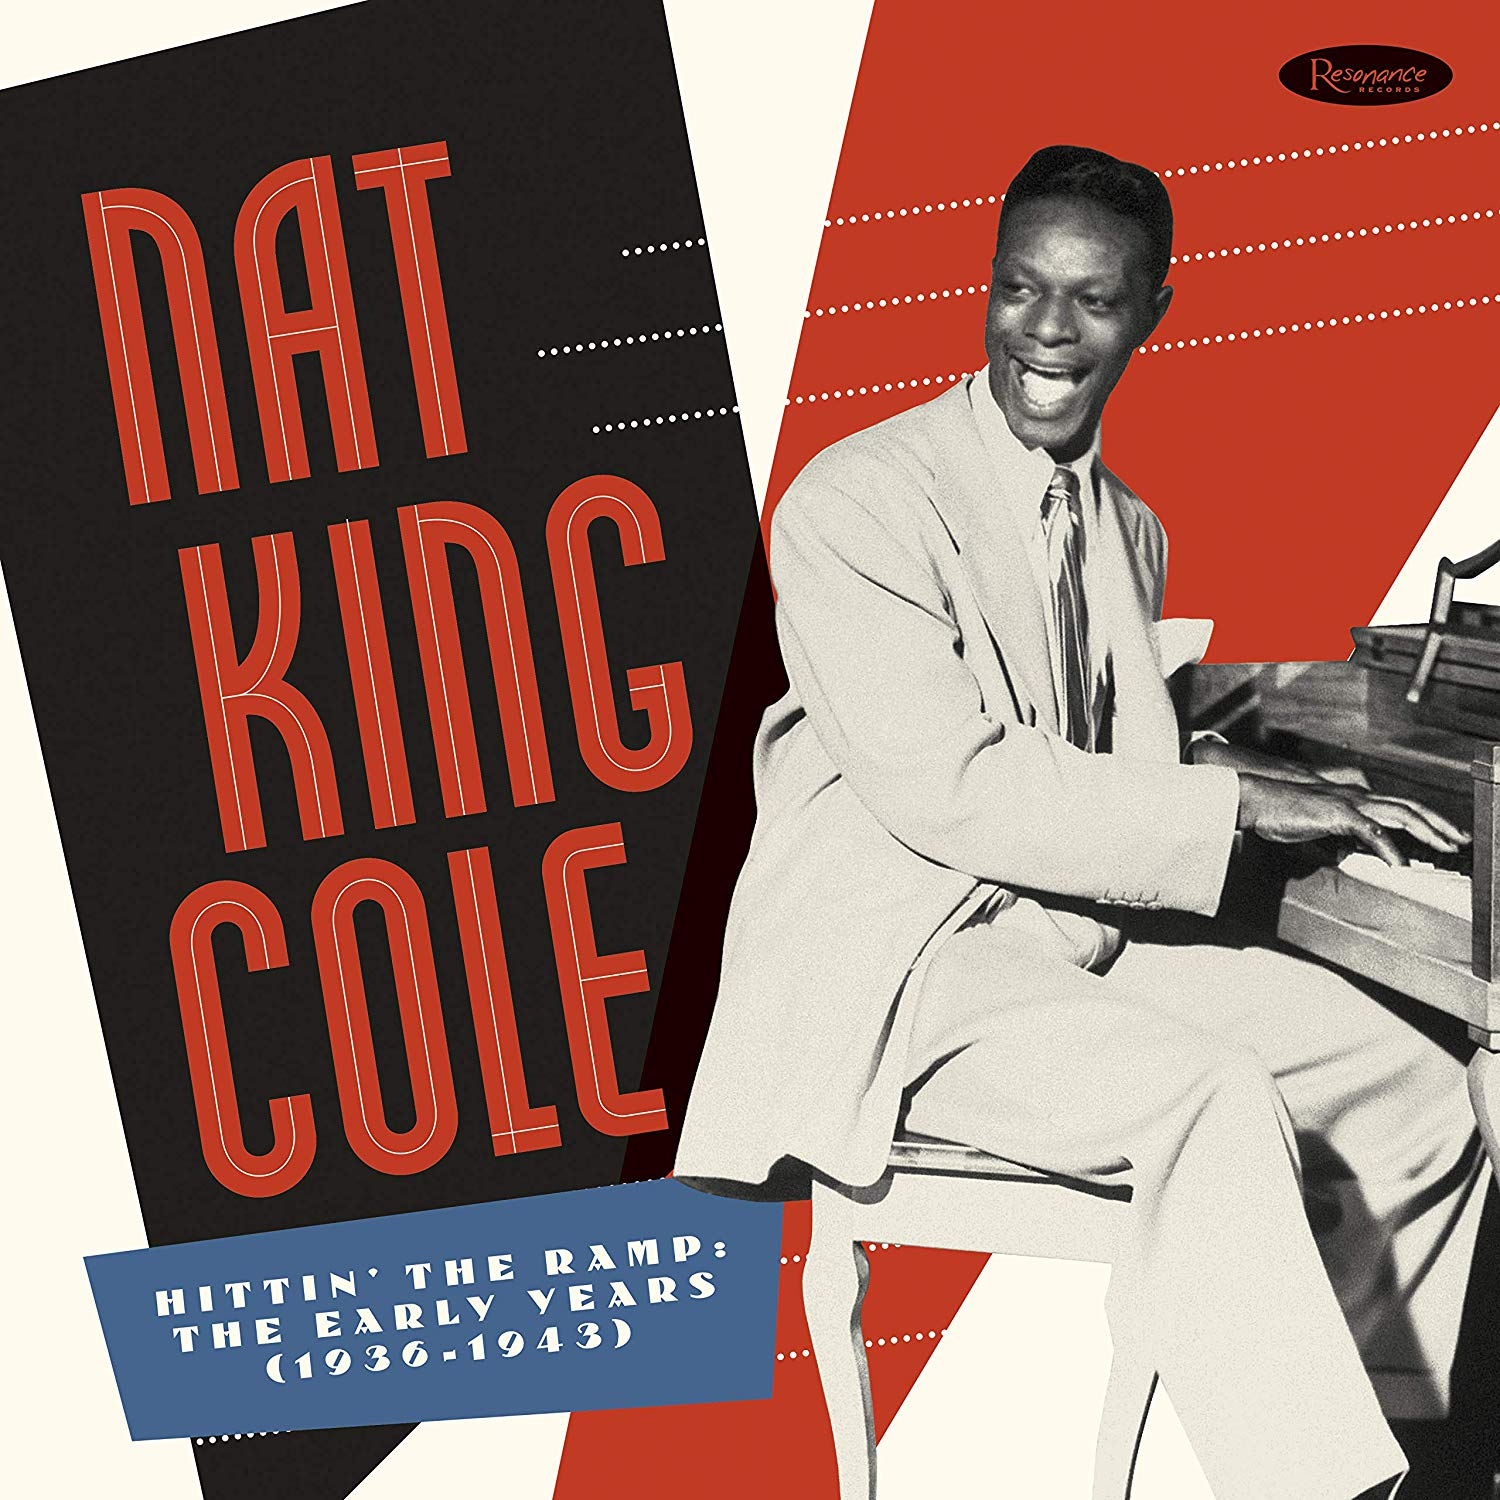 Nat King Cole – Hittin' The Ramp: The Early Years (1936-1943)